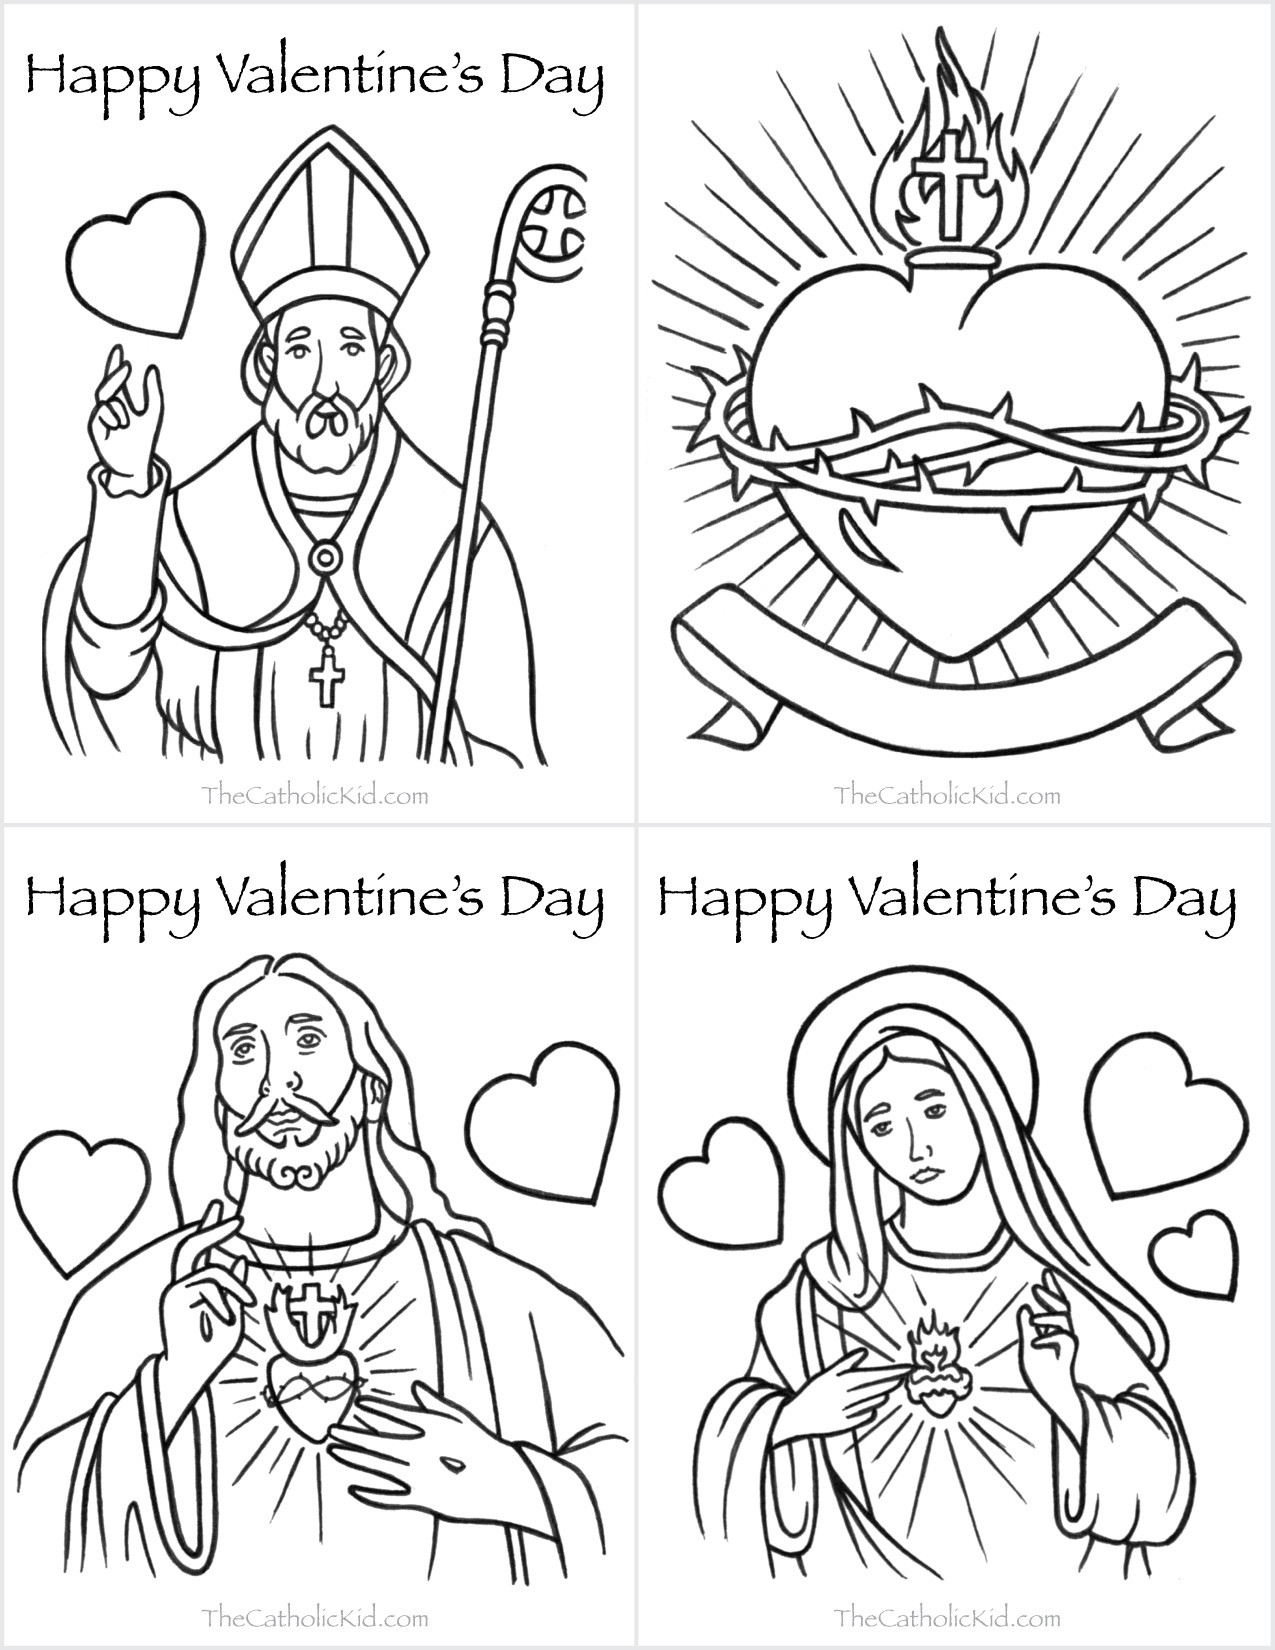 Best ideas about Catholic Christmas Coloring Pages For Kids . Save or Pin Catholic Valentine s Day Cards to Color TheCatholicKid Now.